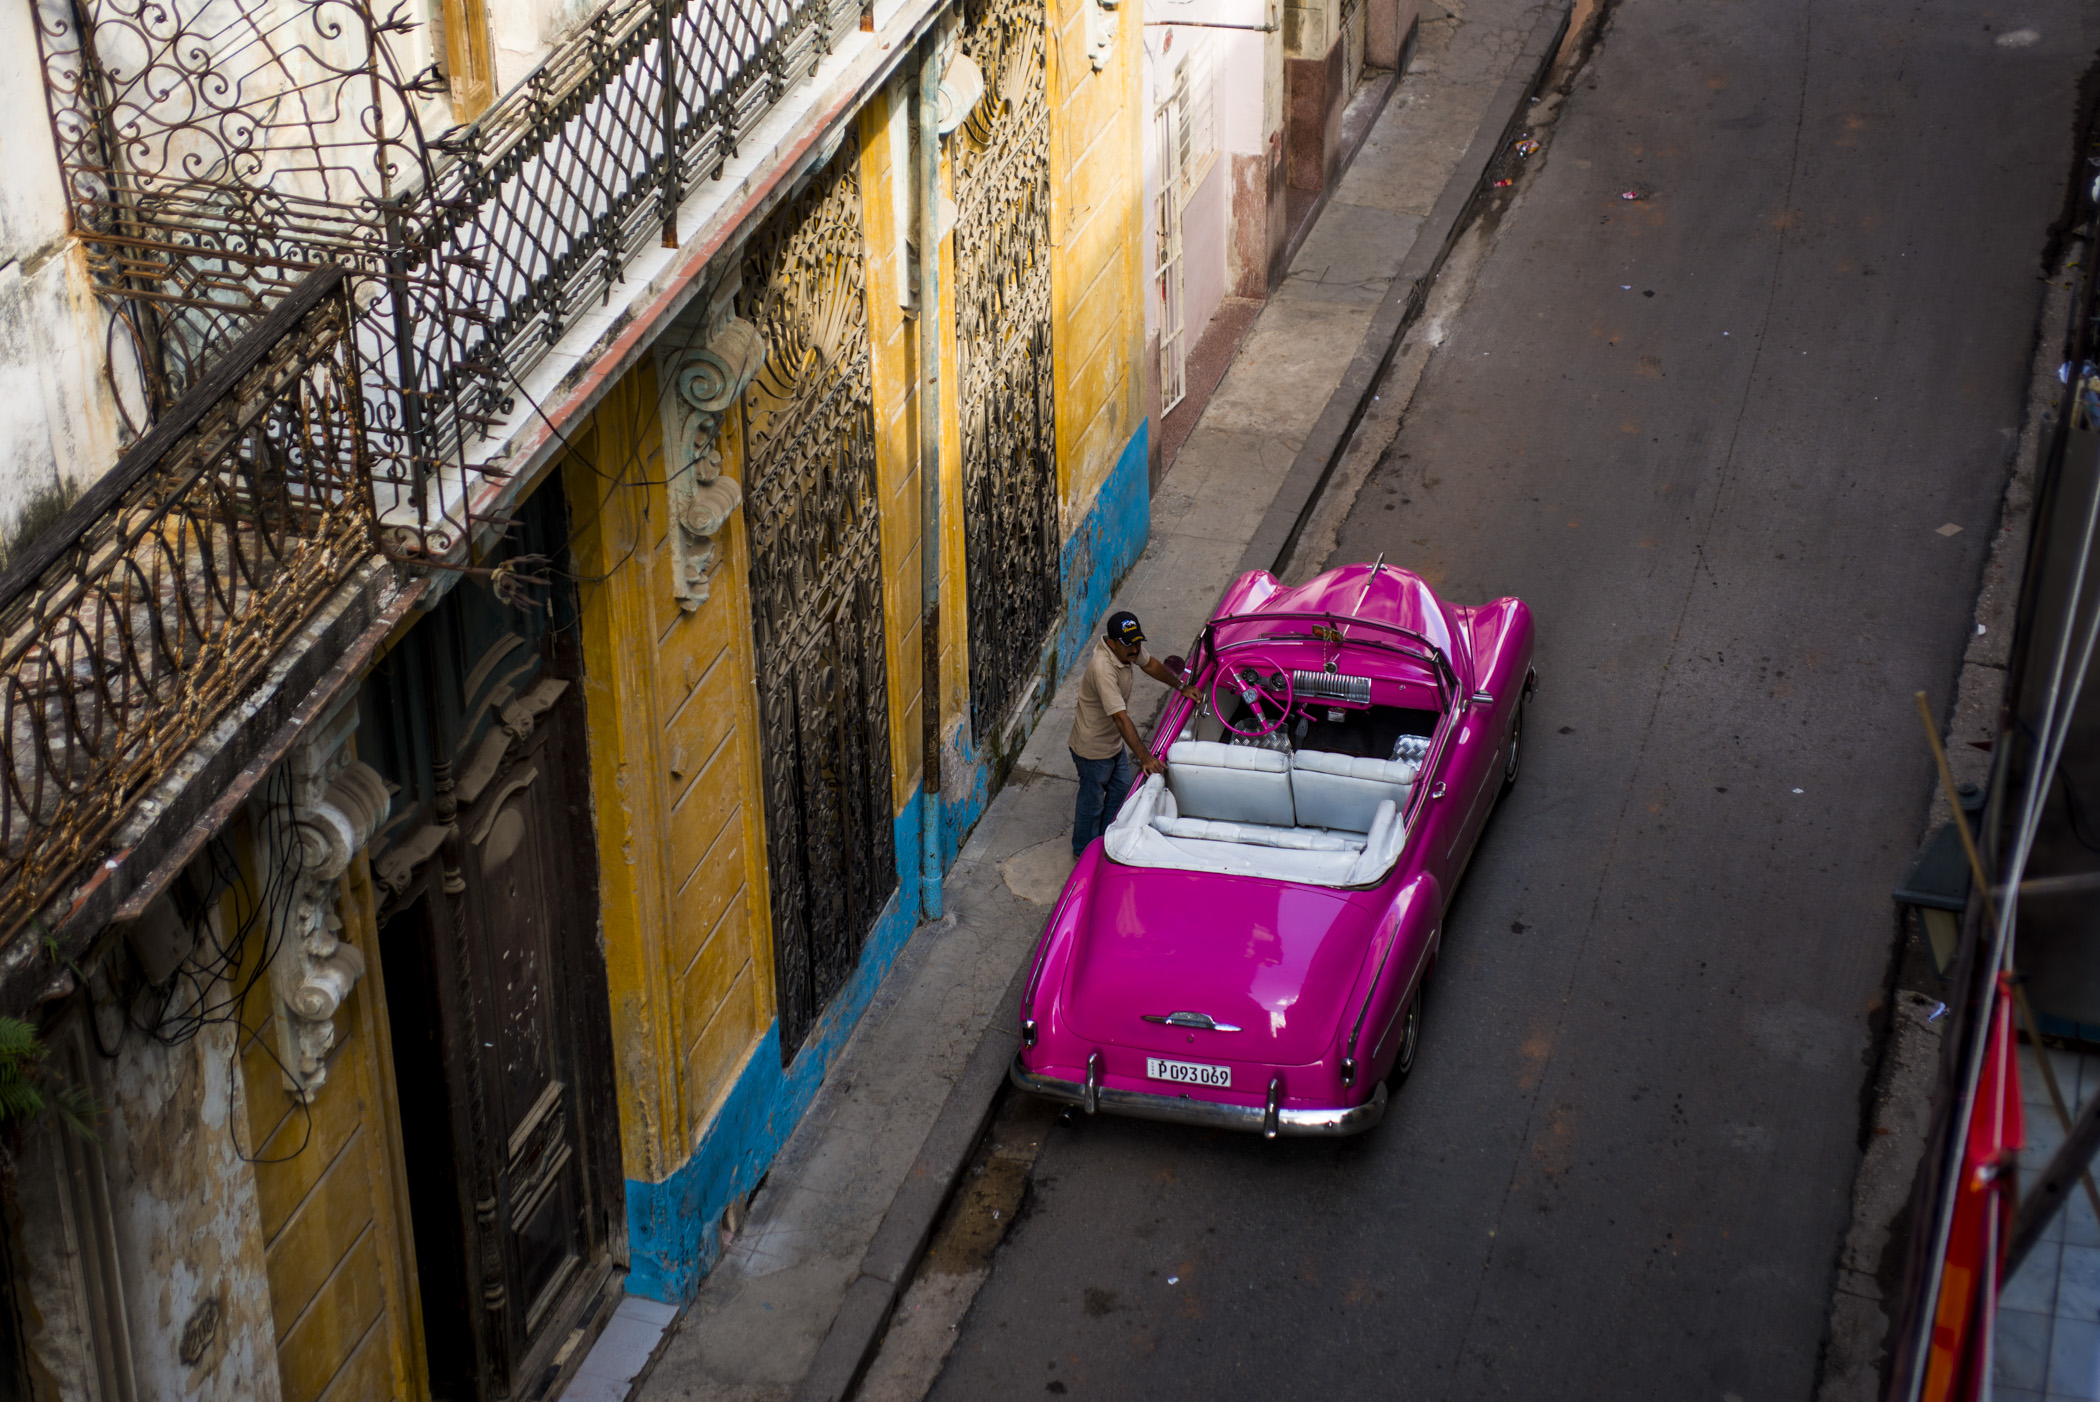 THRU CUBAN EYES CAN DESIGN A TOUR JUST FOR YOU - TAILORED TO YOUR OWN INTERESTS